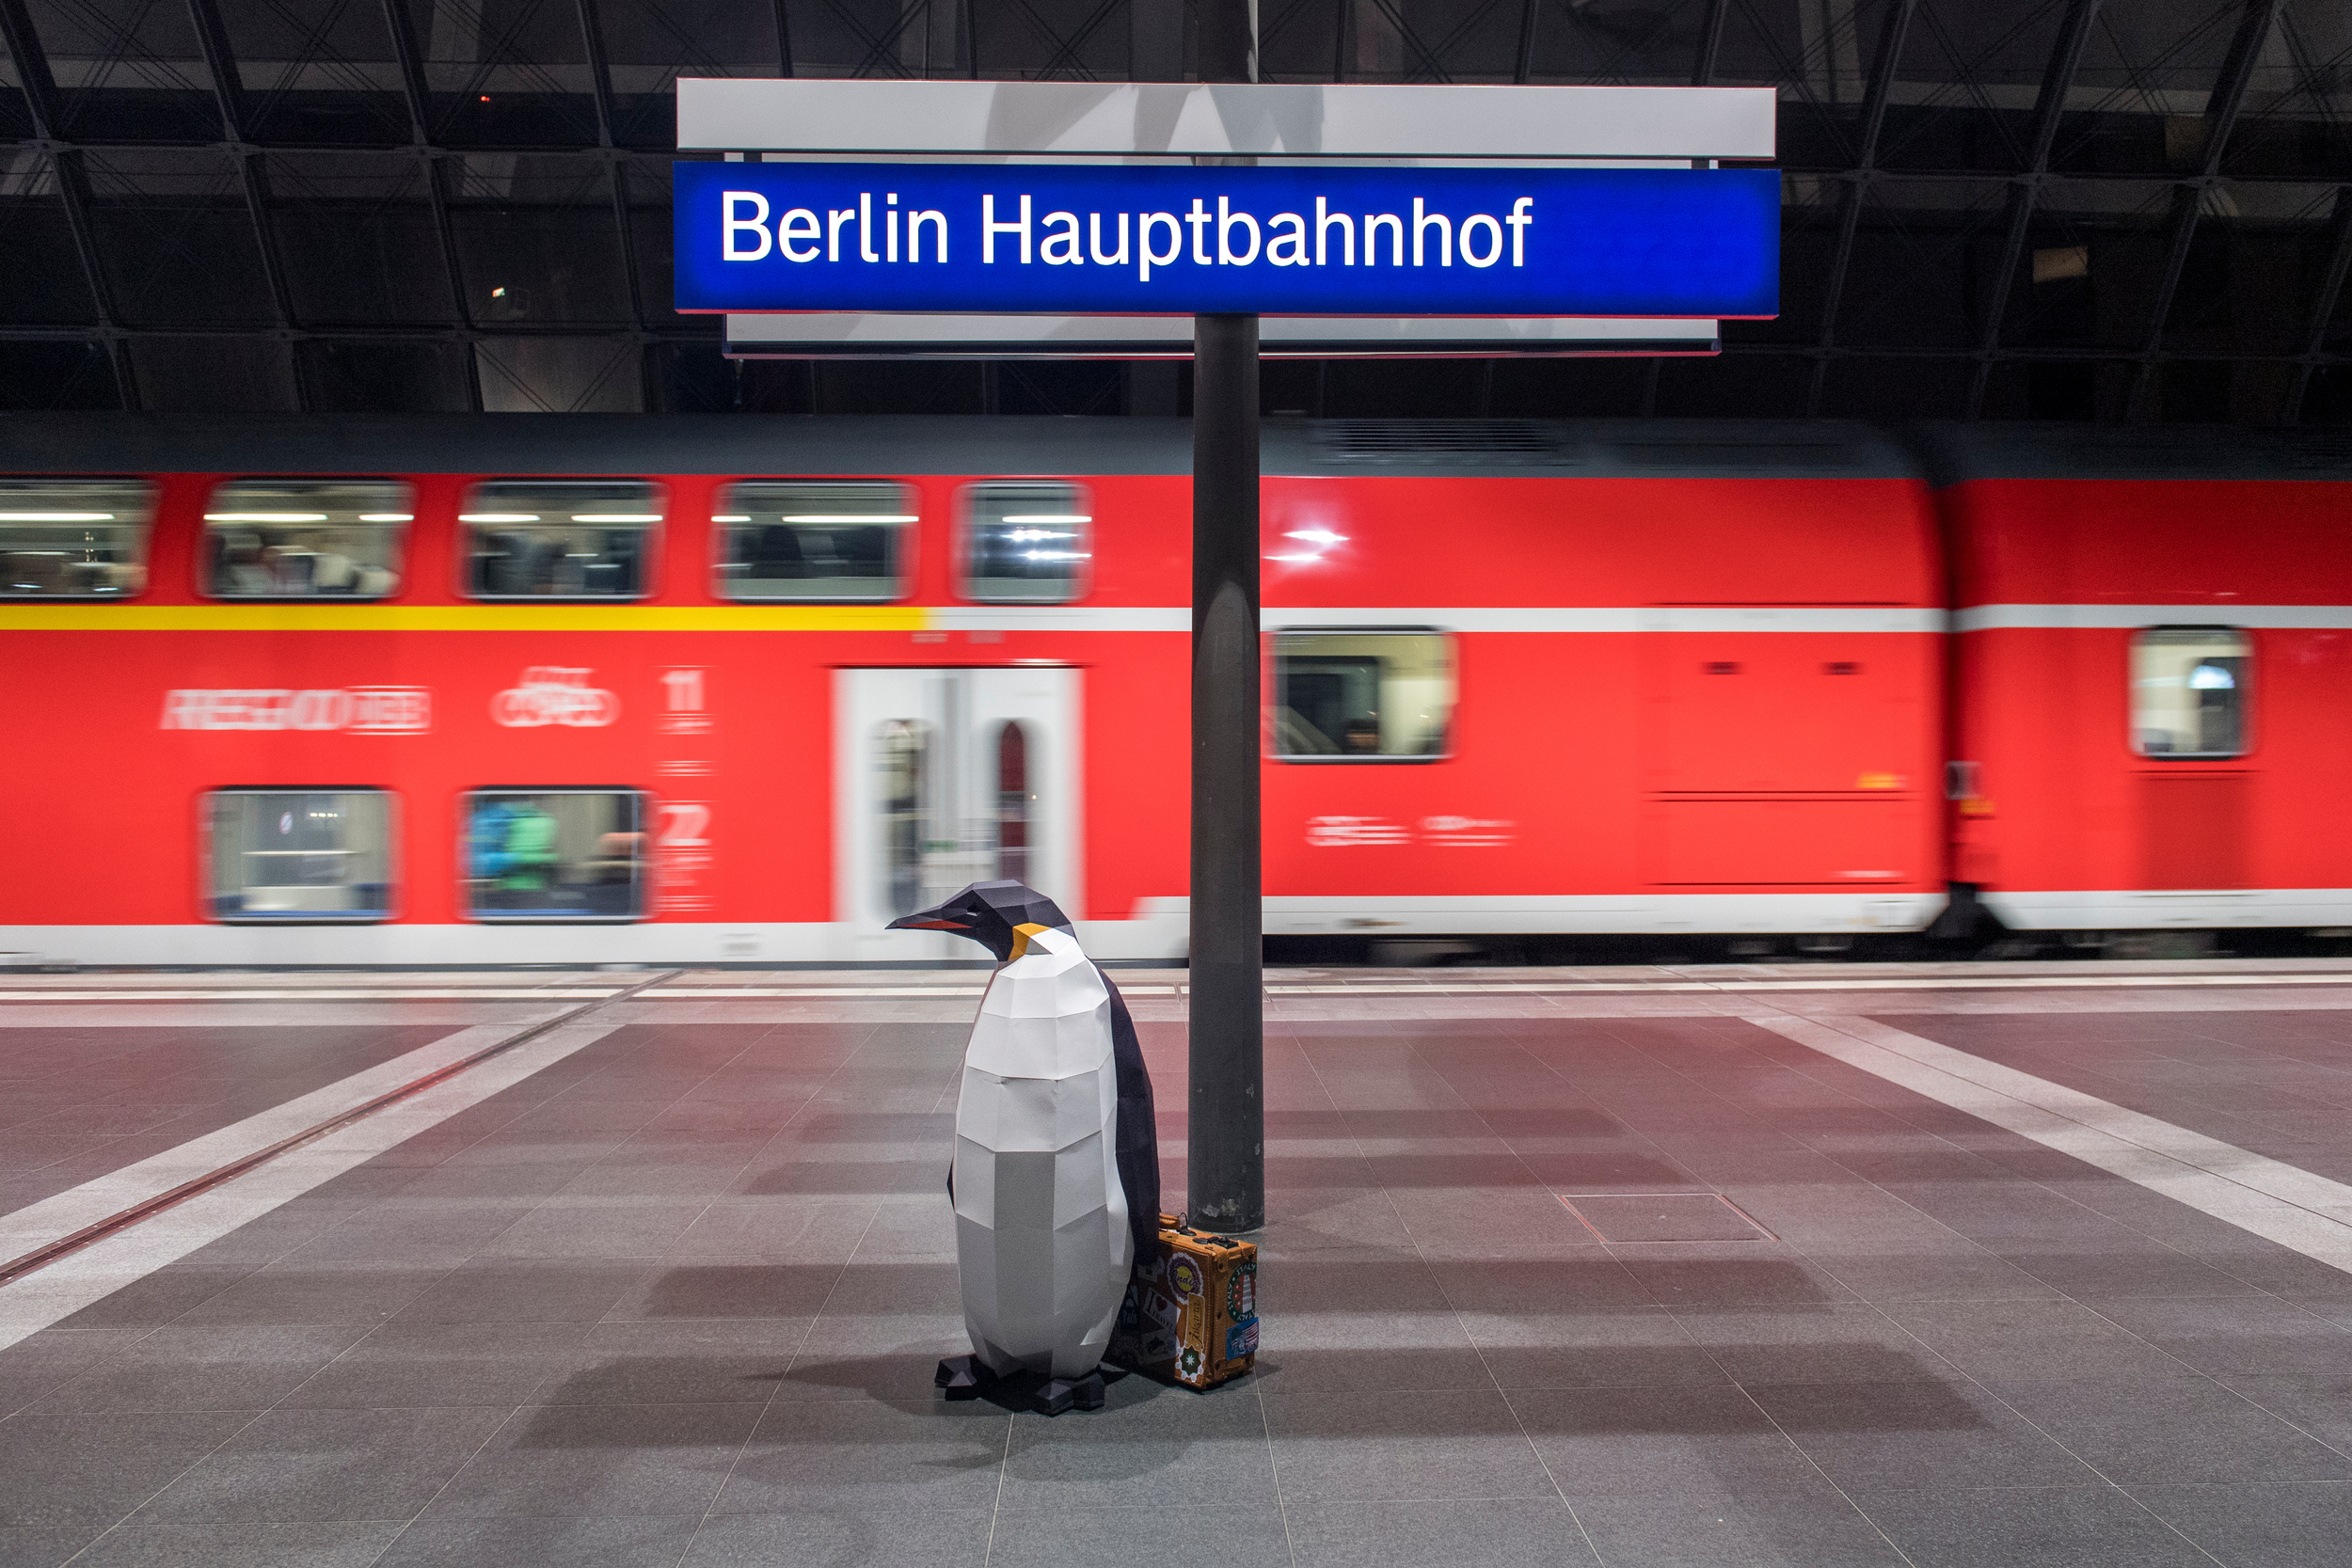 A paper model penguin with a suitcase on a train platform in Berlin.